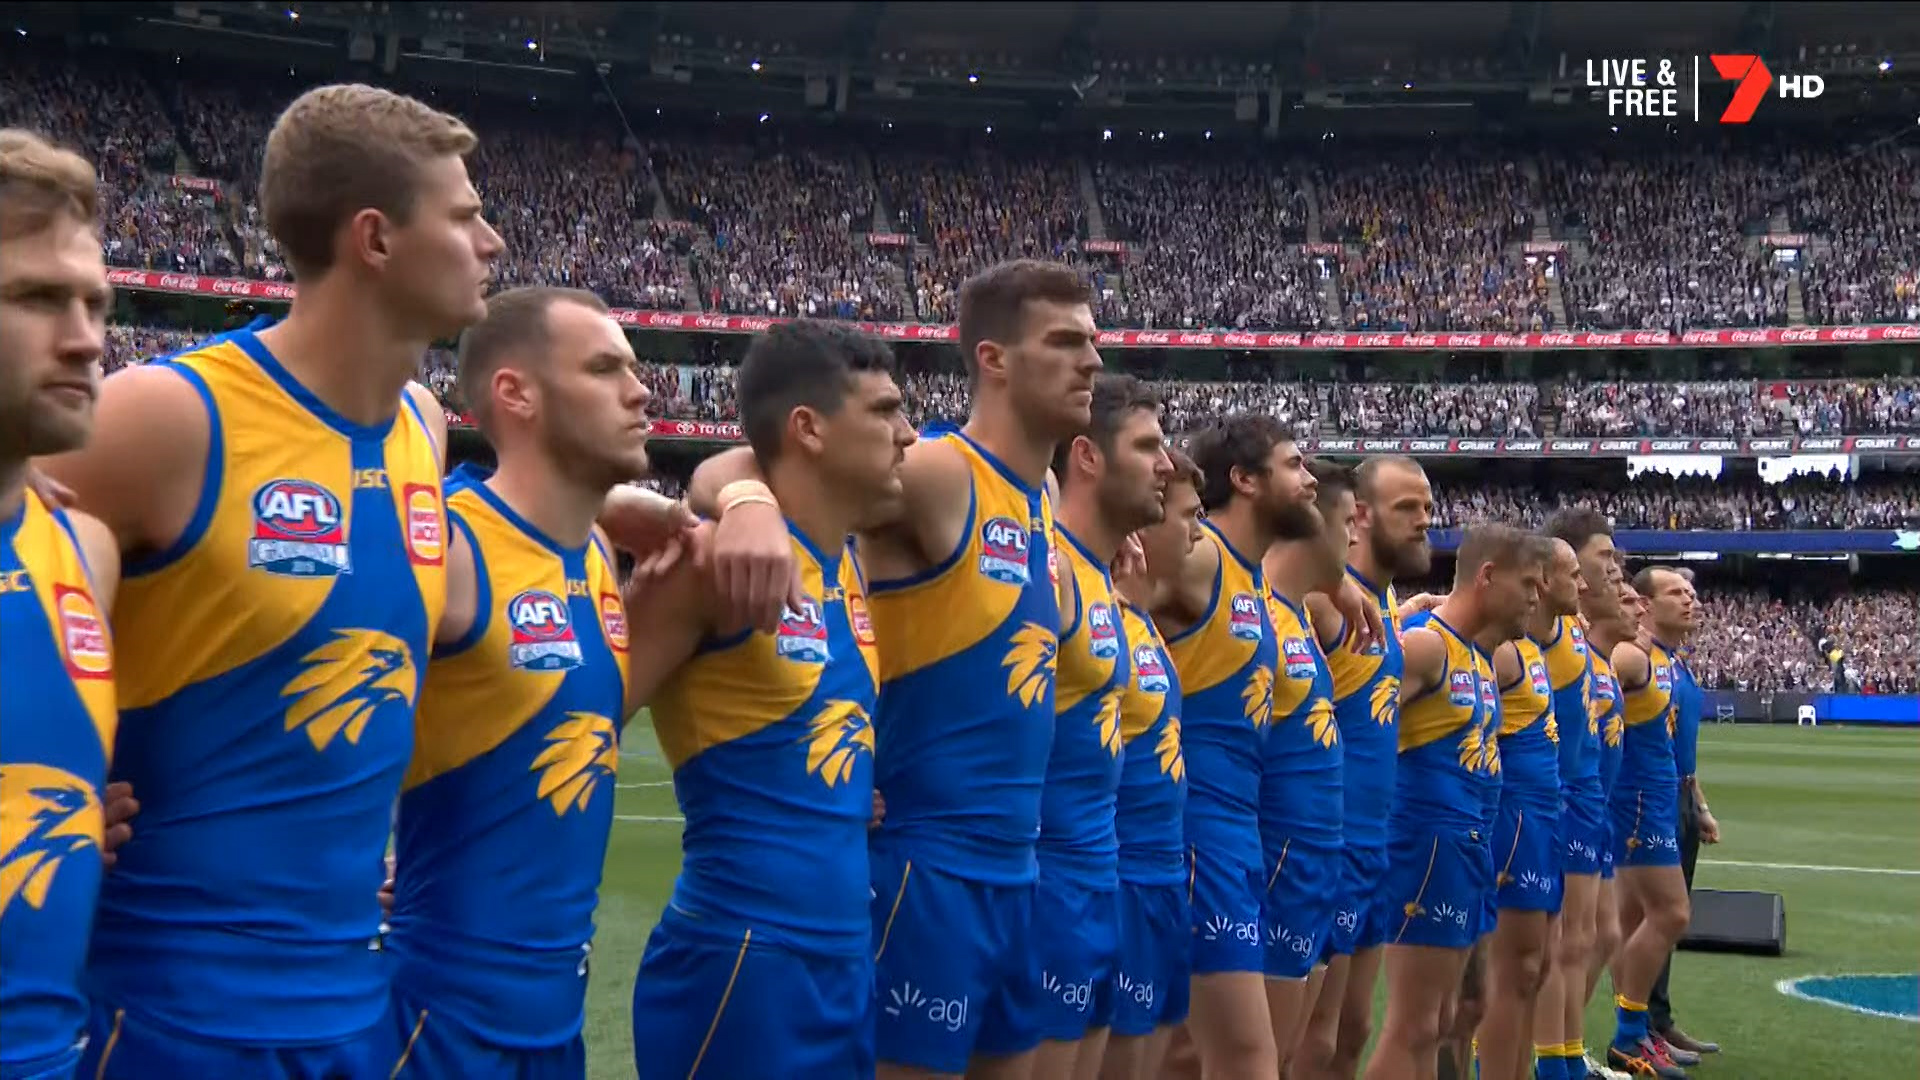 AFL Grand Final player ratings: West Coast Eagles